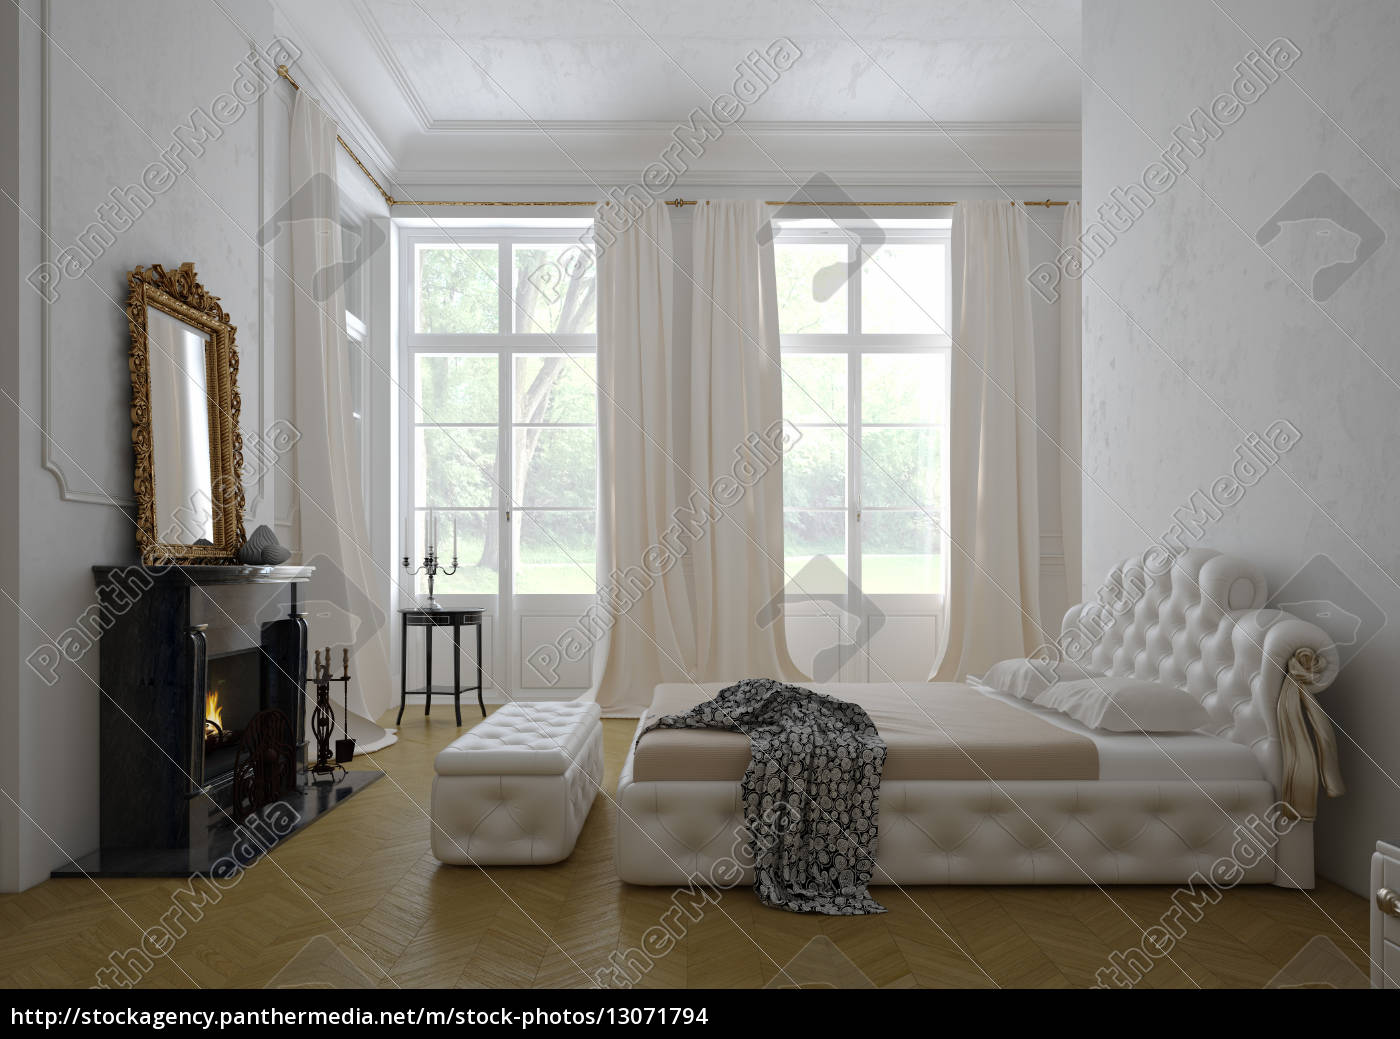 Moderne luxus schlafzimmer  modernen luxus-schlafzimmer interieur. 3d-rendering - Stock Photo ...